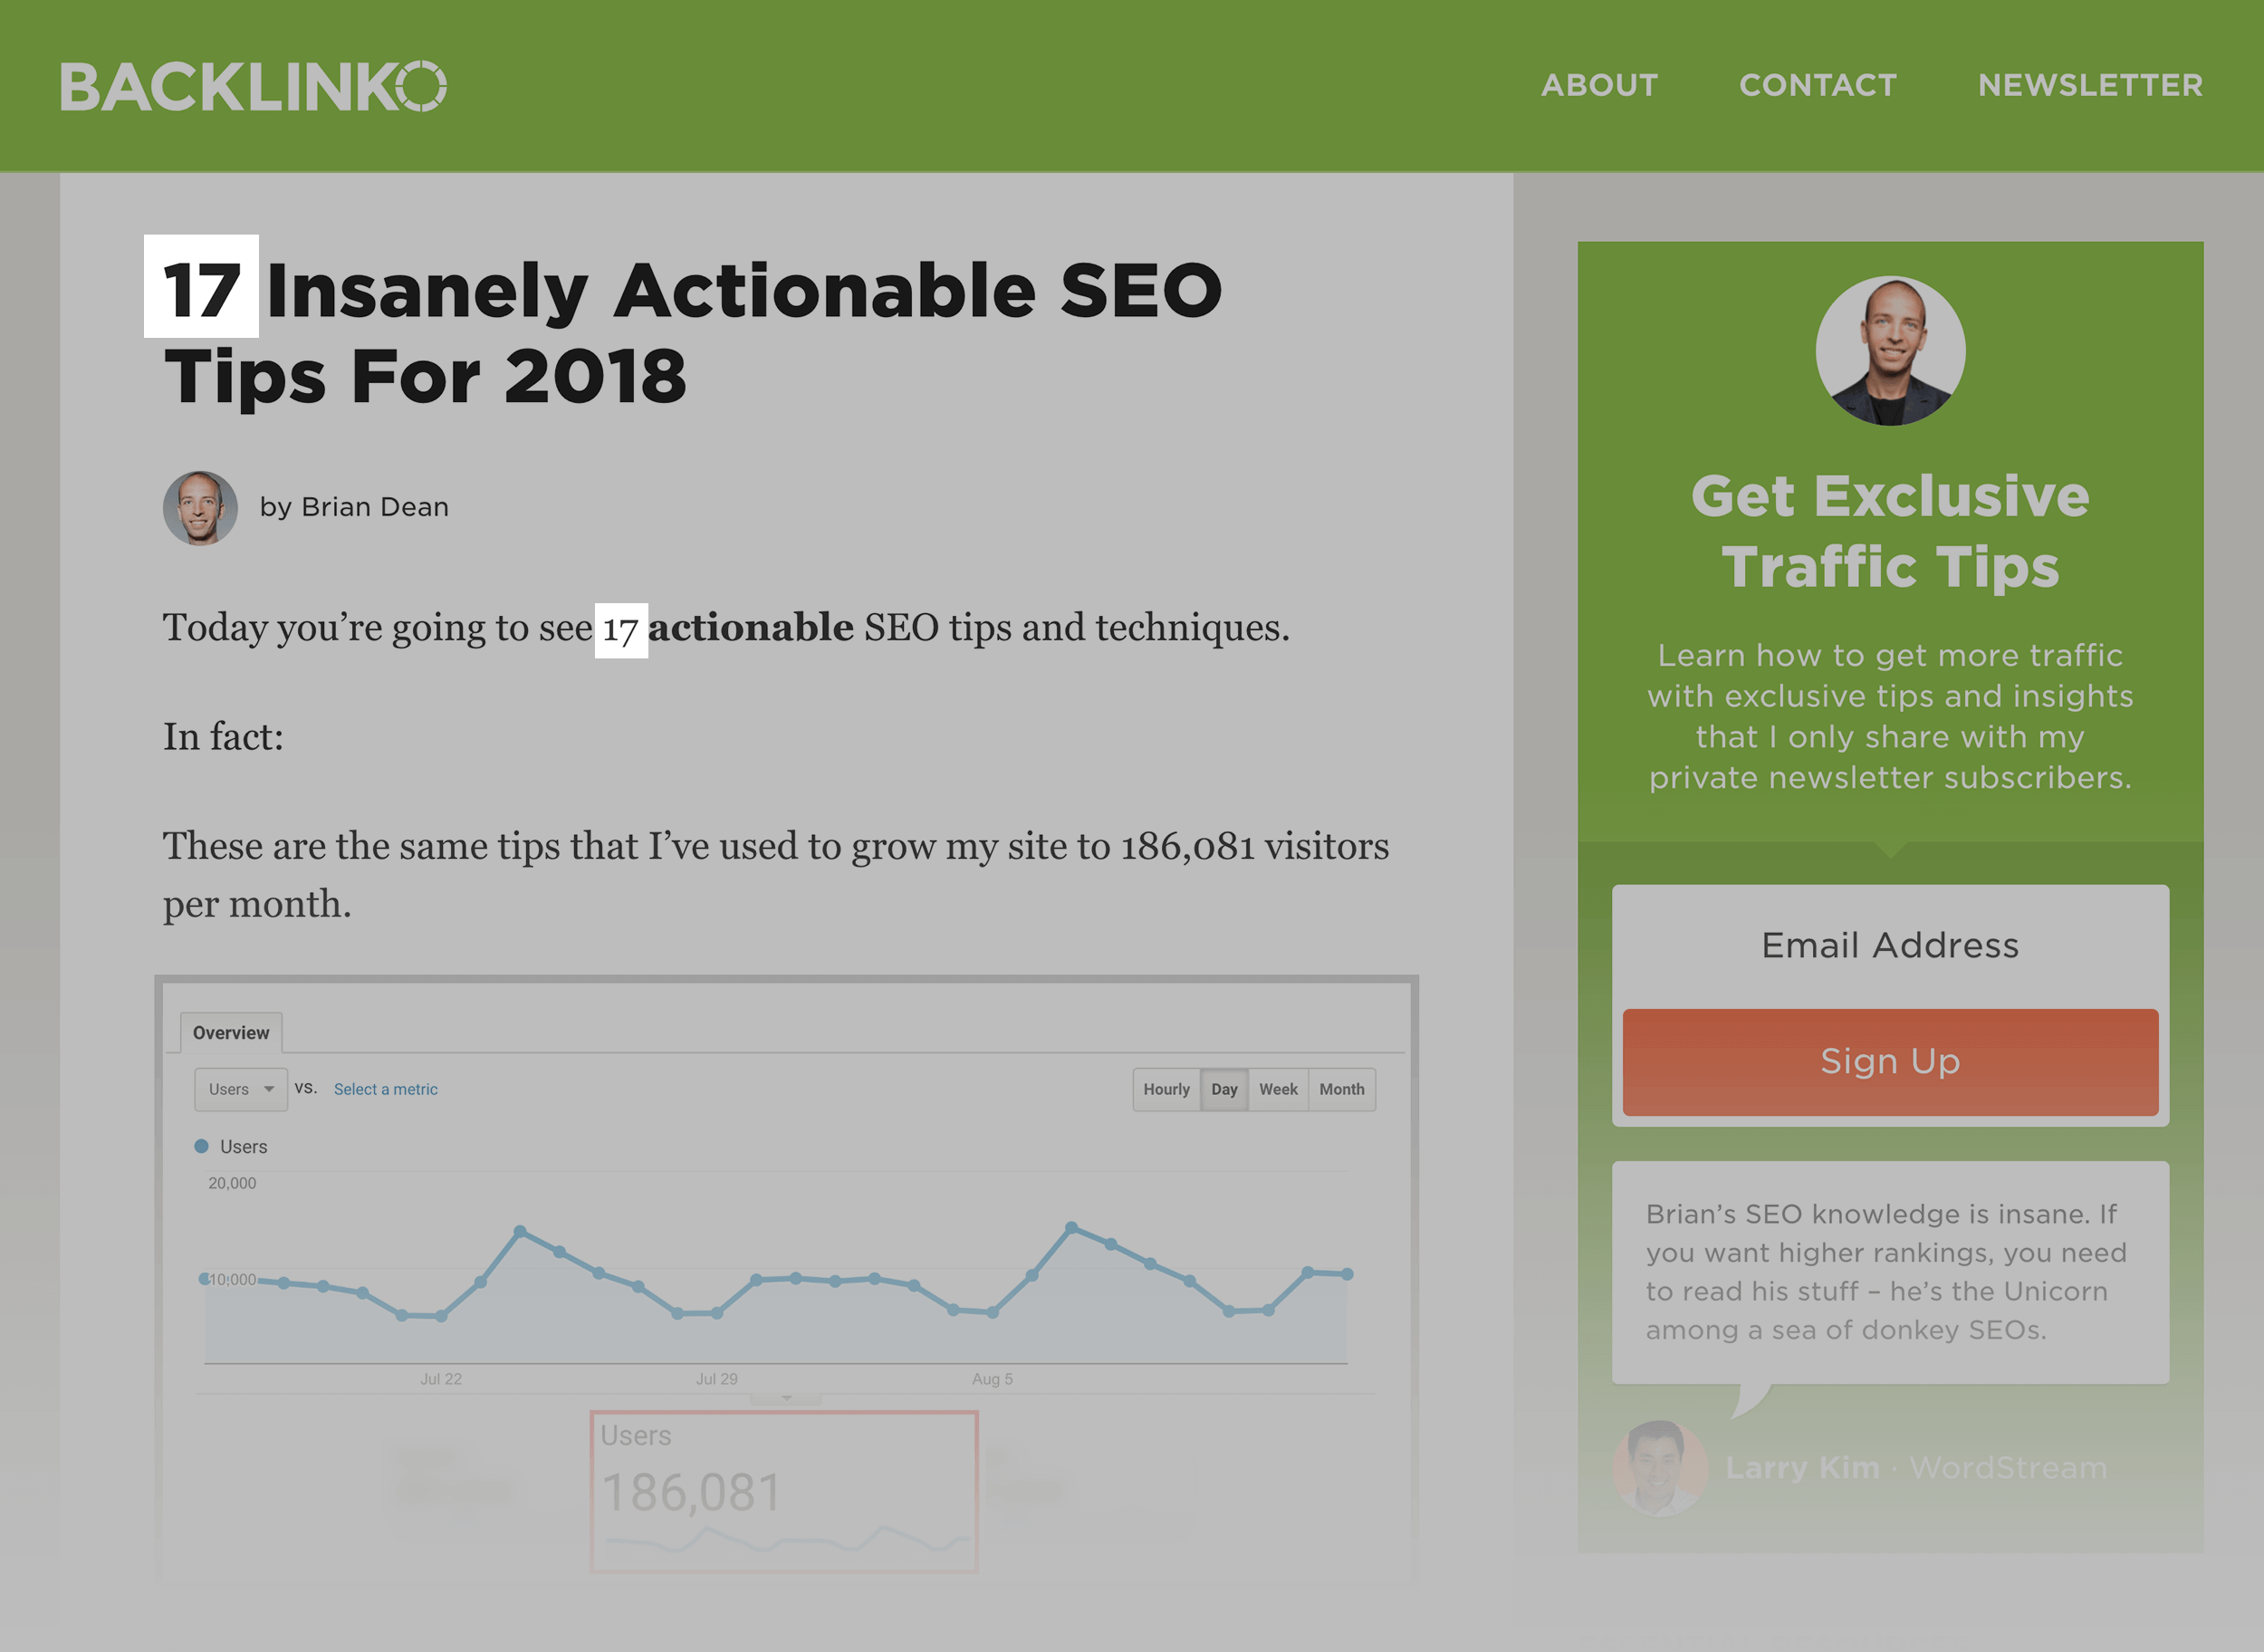 Actionable SEO Tips (number highlight) – Post